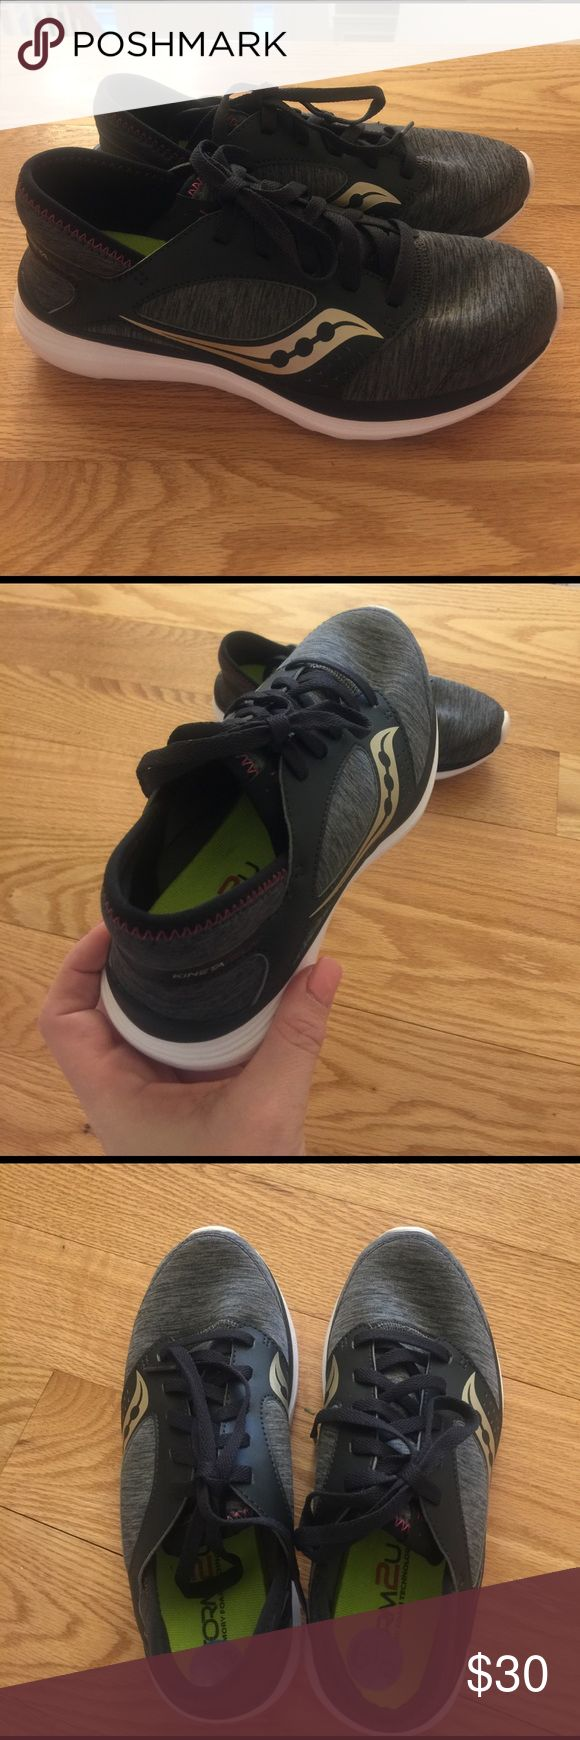 Saucony Memory Foam Sneakers New without tags. Very comfortable memory foam insole. These sneakers are super lightweight. 2 pairs of laces included. Any questions please ask! Saucony Shoes Sneakers